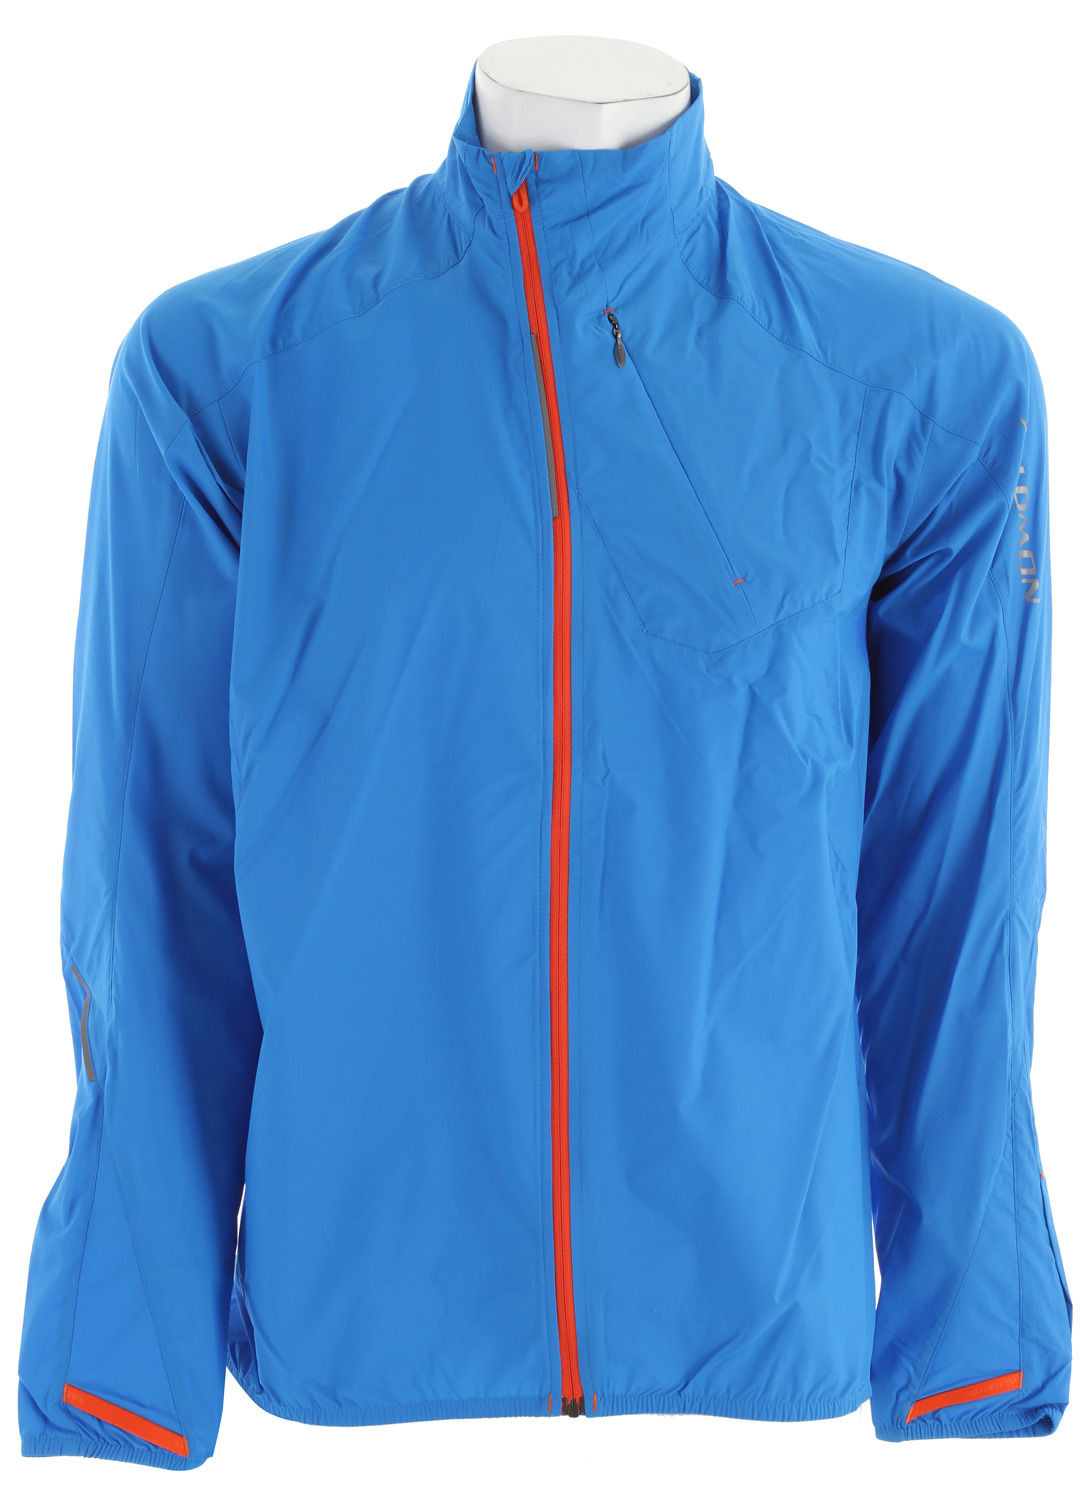 Camp and Hike Very light, very packable and with mesh pits to let excess heat and moisture escape. The Fast Wing protects from the wind and packs into a pocket that can be worn around the arm.Key Features of the Salomon Fast Wing III Windbreaker: Smart Skin™ Climawind™ light ribstop Actilite™ stretch mesh 1 chest pocket Reflective branding front & back thumb loop Wearable stow pocket with arm attachment Stash pocket Body: PA 100% Active fit 150g - $56.95